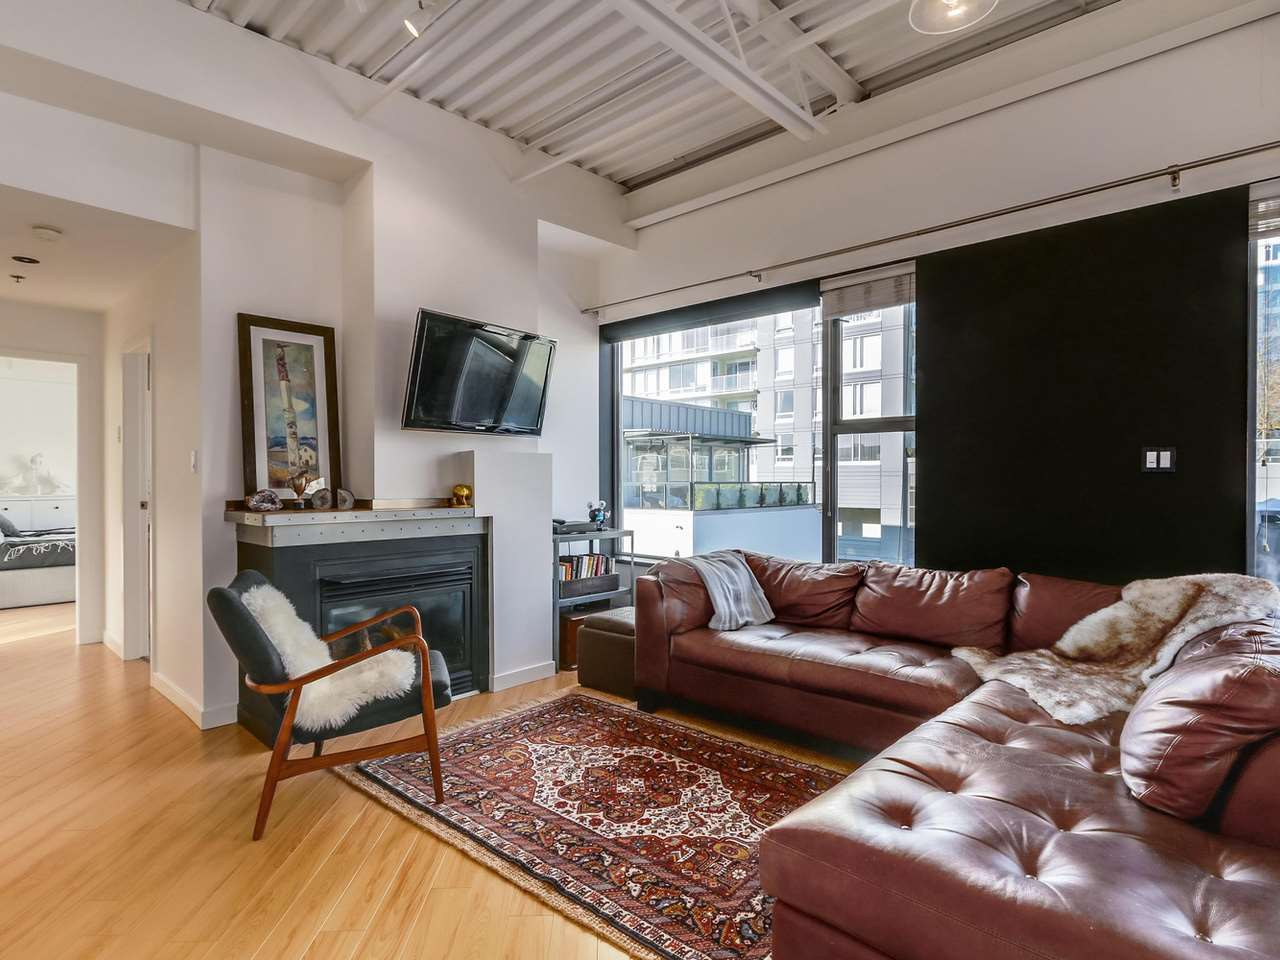 Photo 5: 511 549 COLUMBIA STREET in New Westminster: Downtown NW Condo for sale : MLS® # R2129468